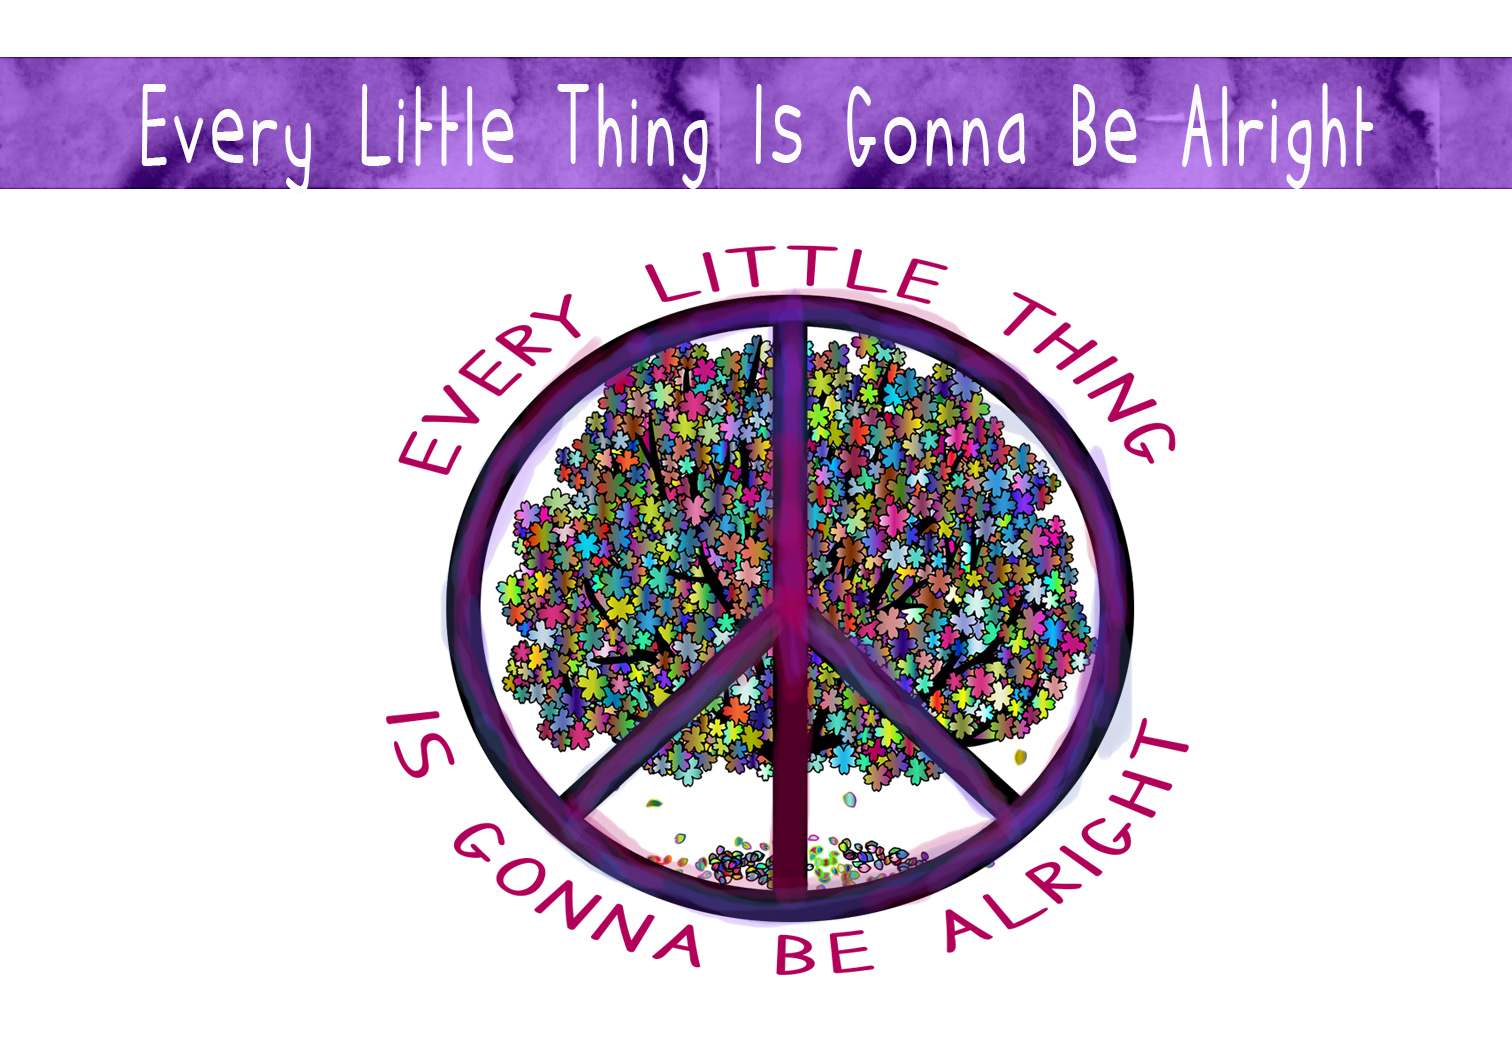 Download Free Every Little Thing Is Gonna Be Alright Graphic By Capeairforce for Cricut Explore, Silhouette and other cutting machines.